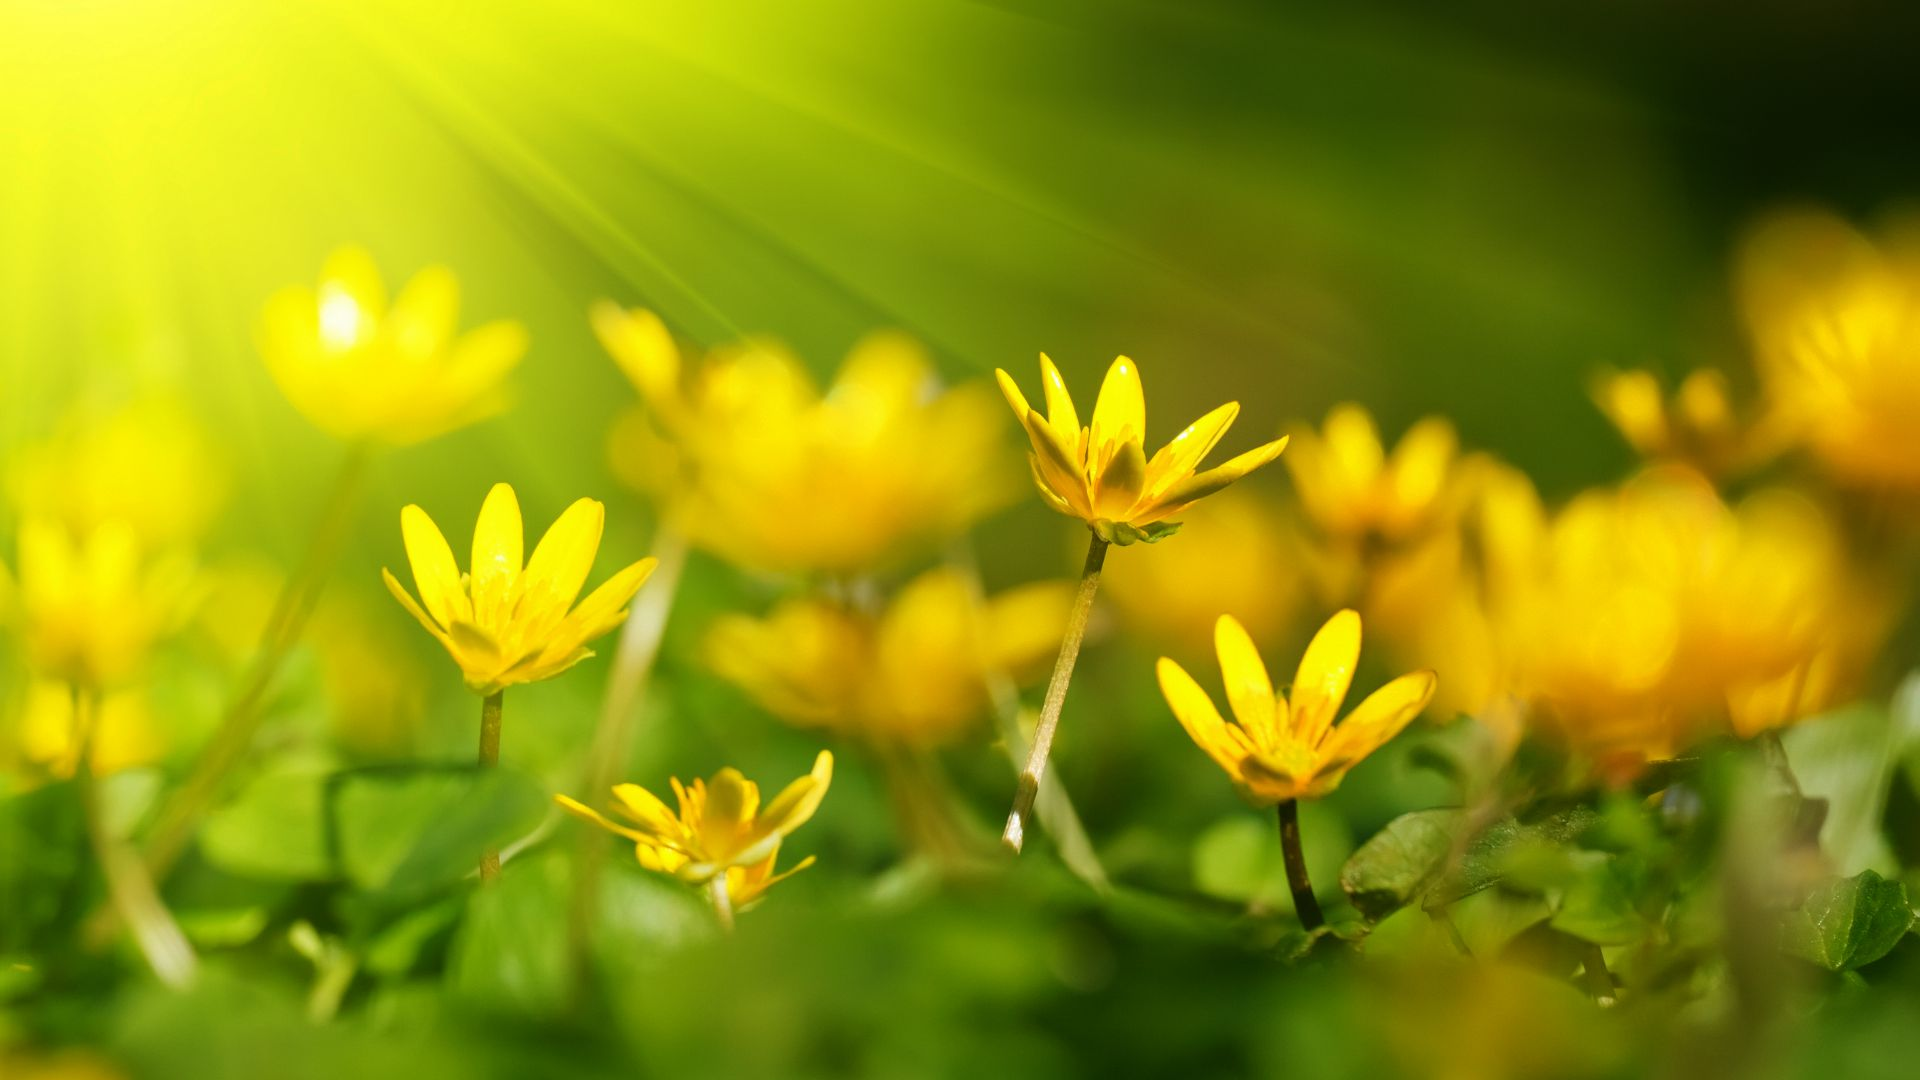 Flowers, 5k, 4k wallpaper, 8k, sunray, yellow, green grass (horizontal)